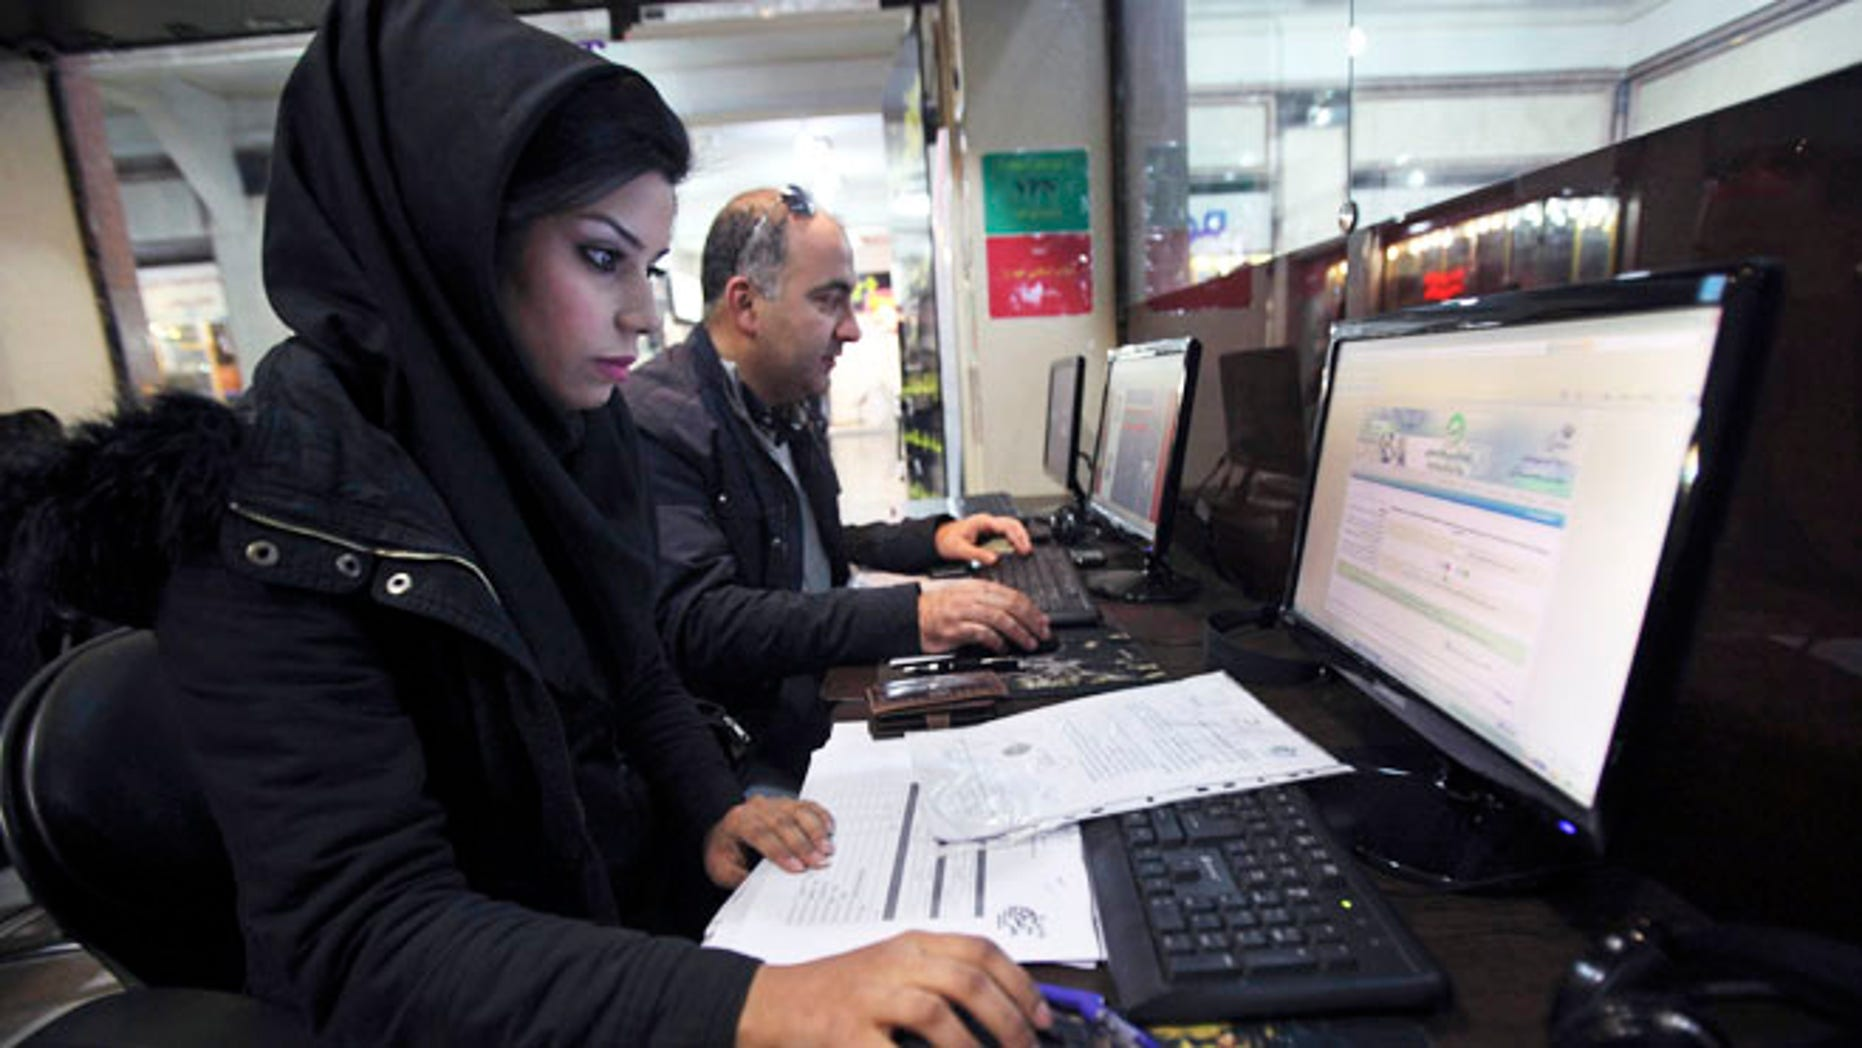 Jan. 6, 2013: Iranians surf the web in an internet cafe at a shopping center, in central Tehran. Iranian authorities have blocked many foreign-based virtual private networks, or VPNs, severely restricting access to many websites.